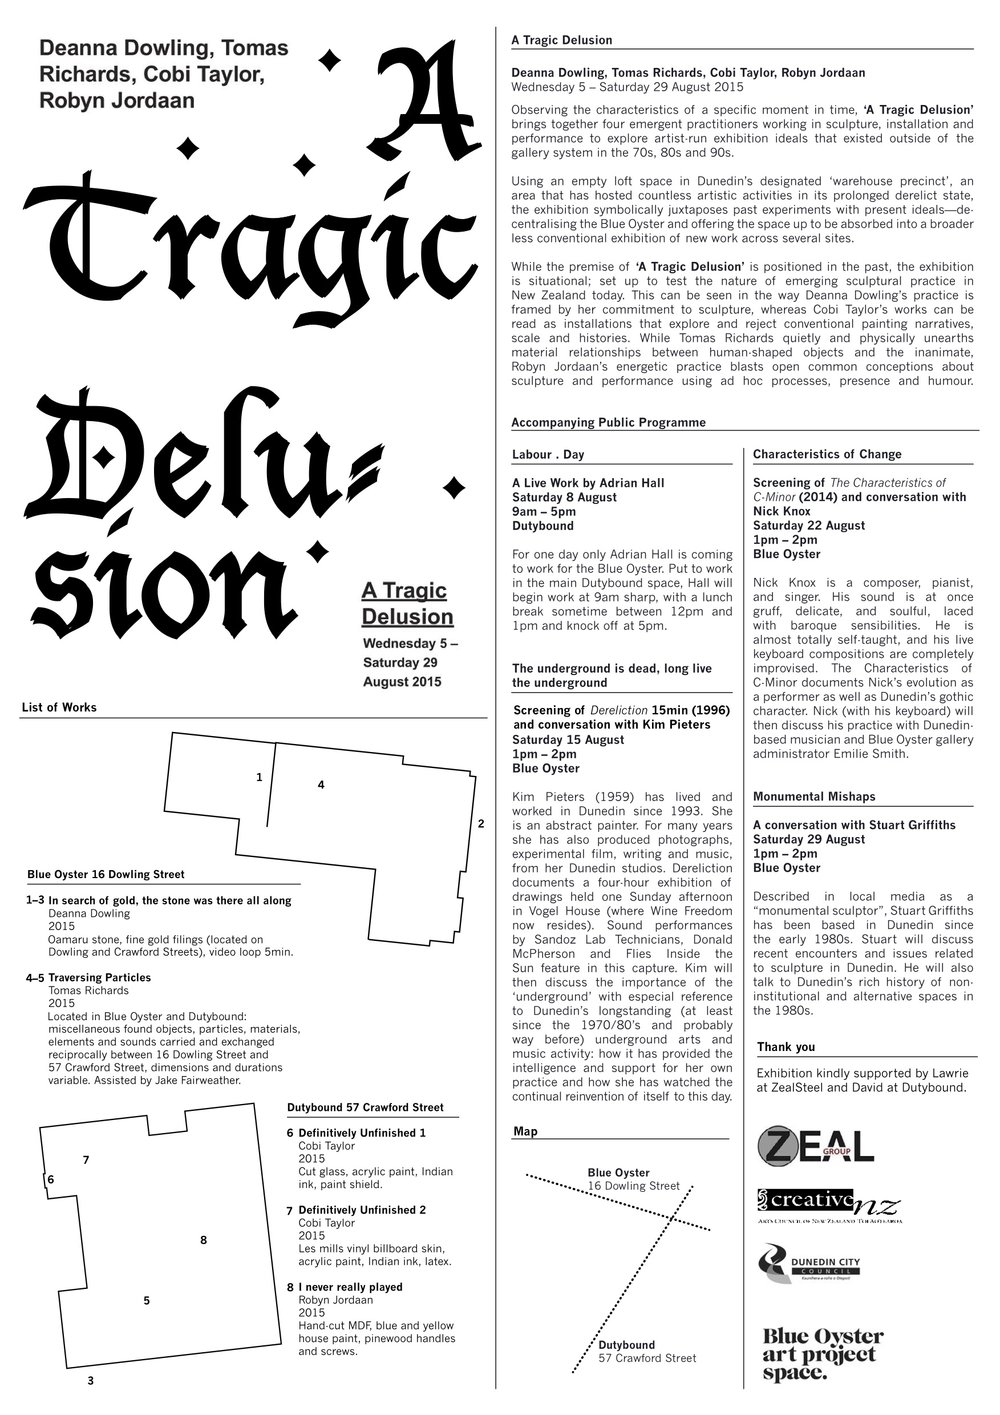 A-Tragic-Delusion-exhibition-info-web2 copy.jpg